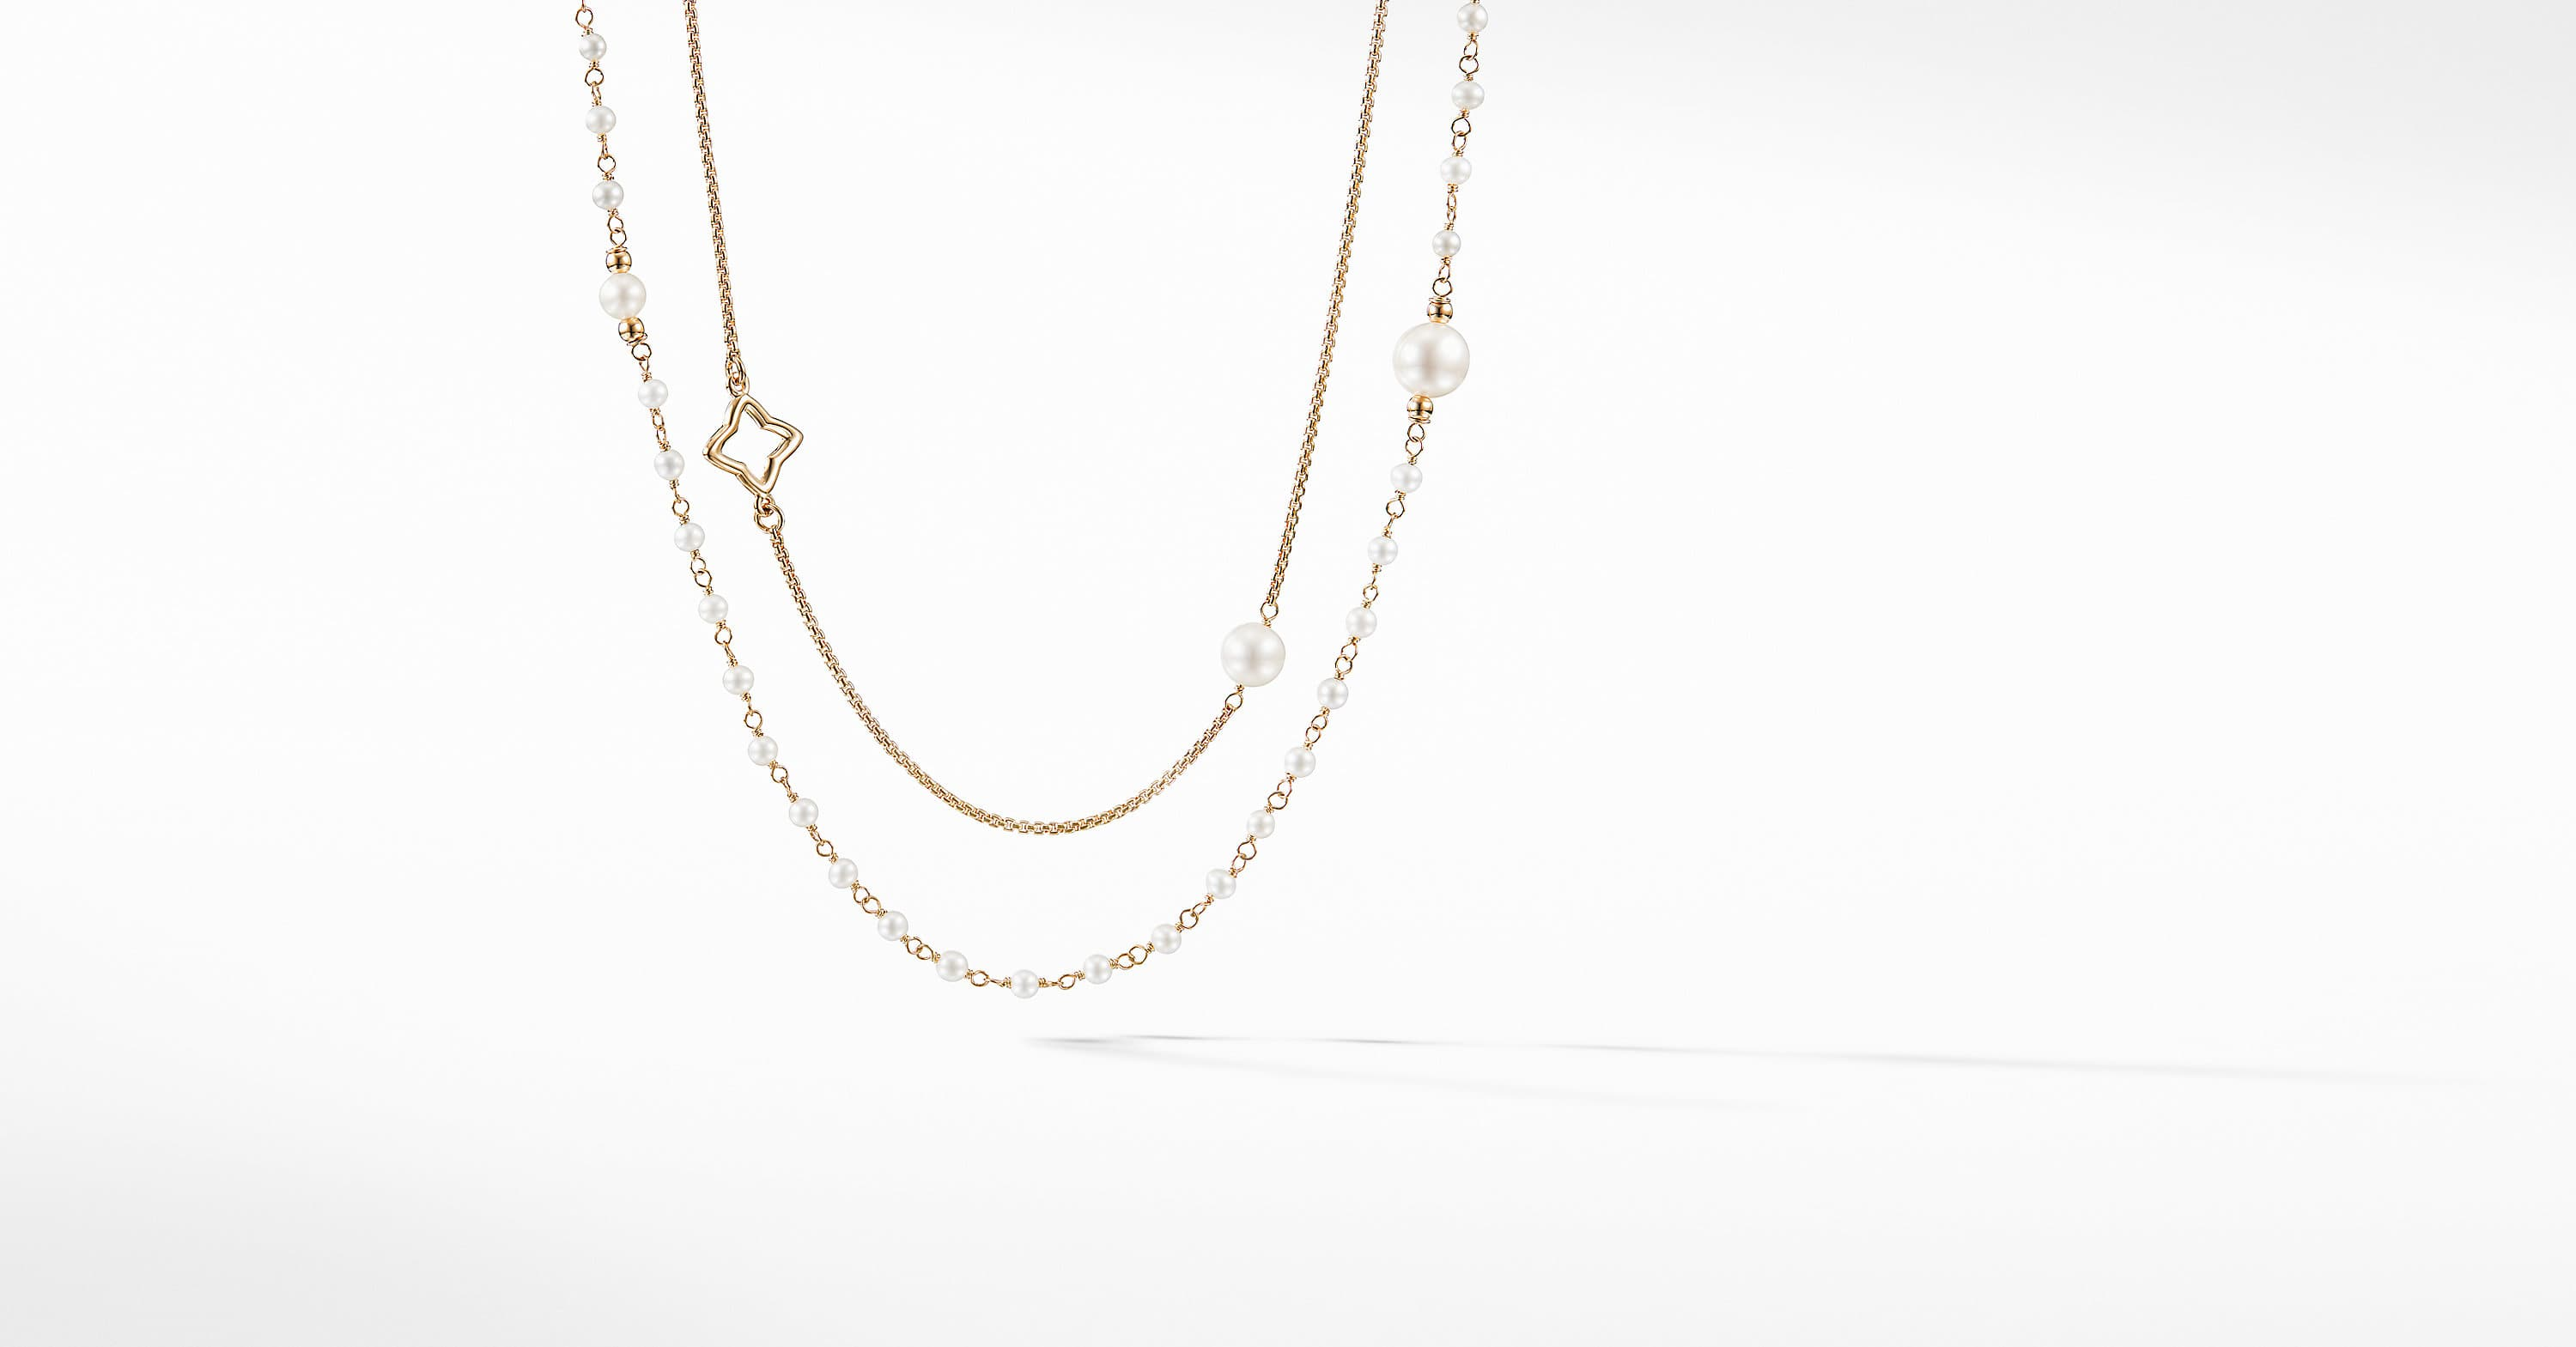 Oceanica Two-Row Chain Necklace in 18k Gold